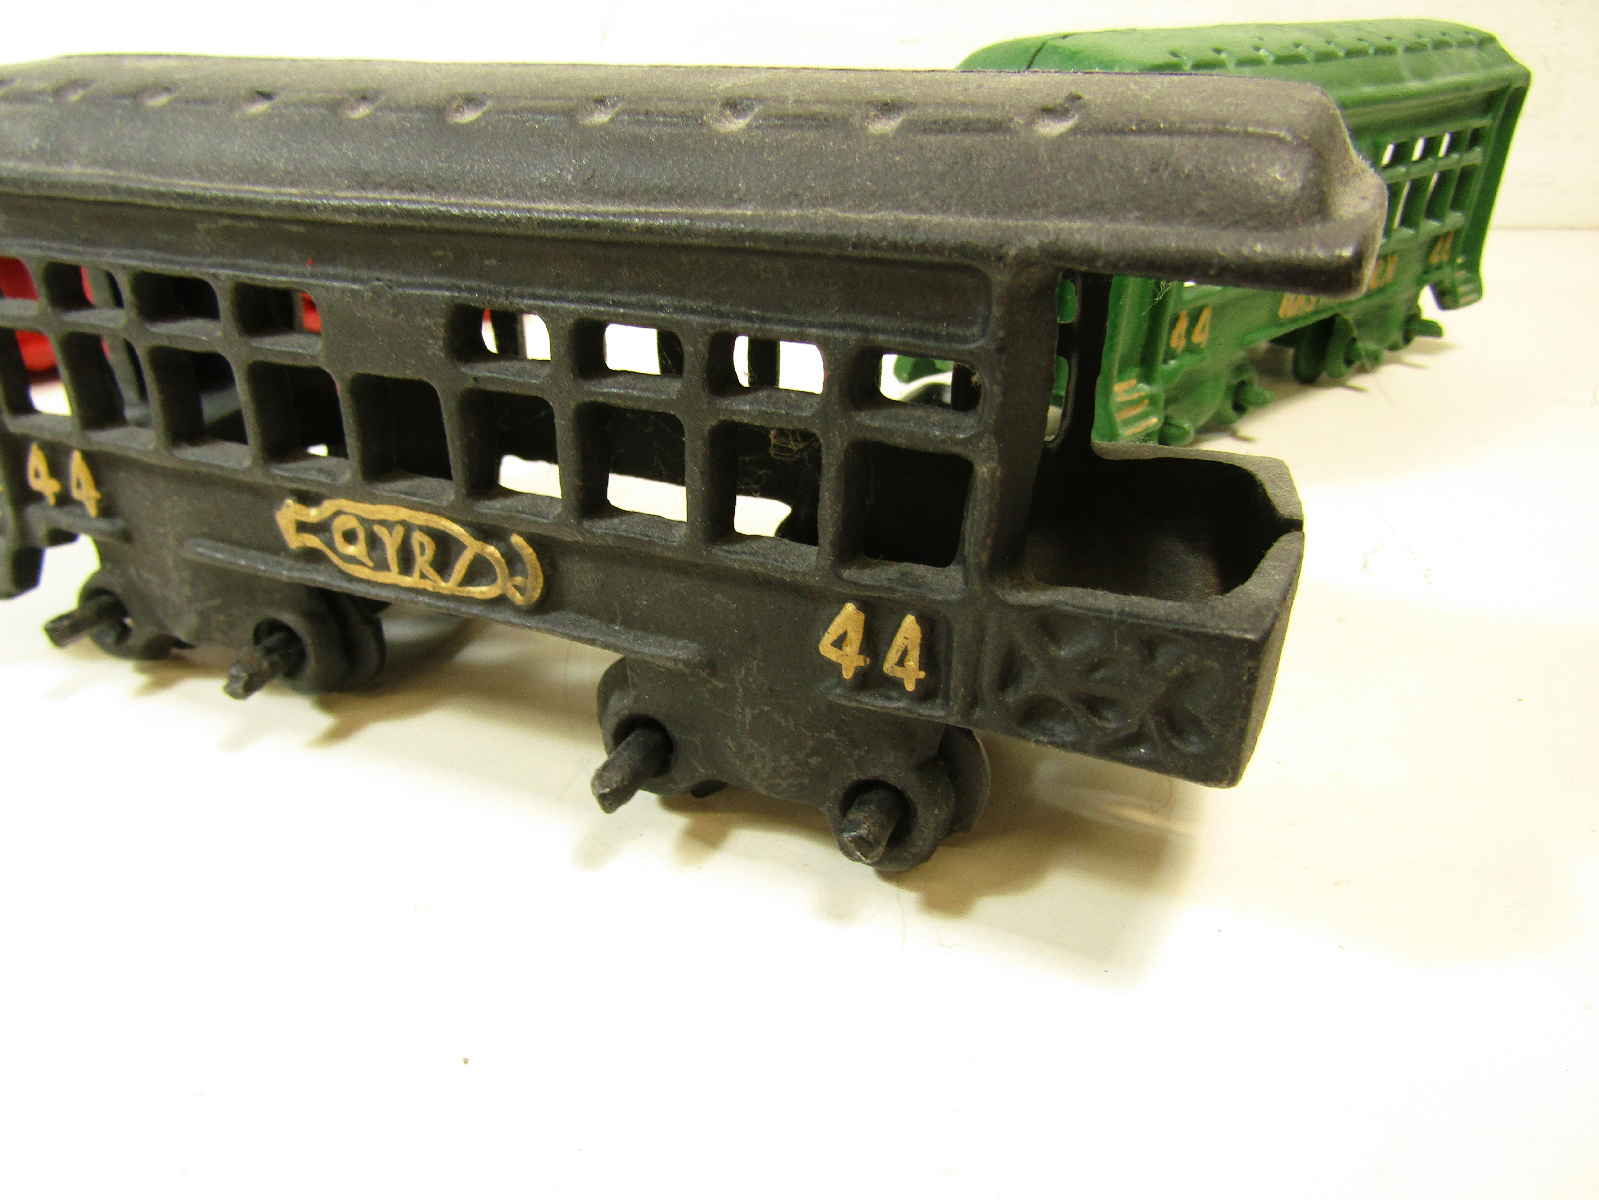 Nycrr Cast Iron Train: Vintage Pennsylvania Railroad PRR Washington 44 Cast Iron